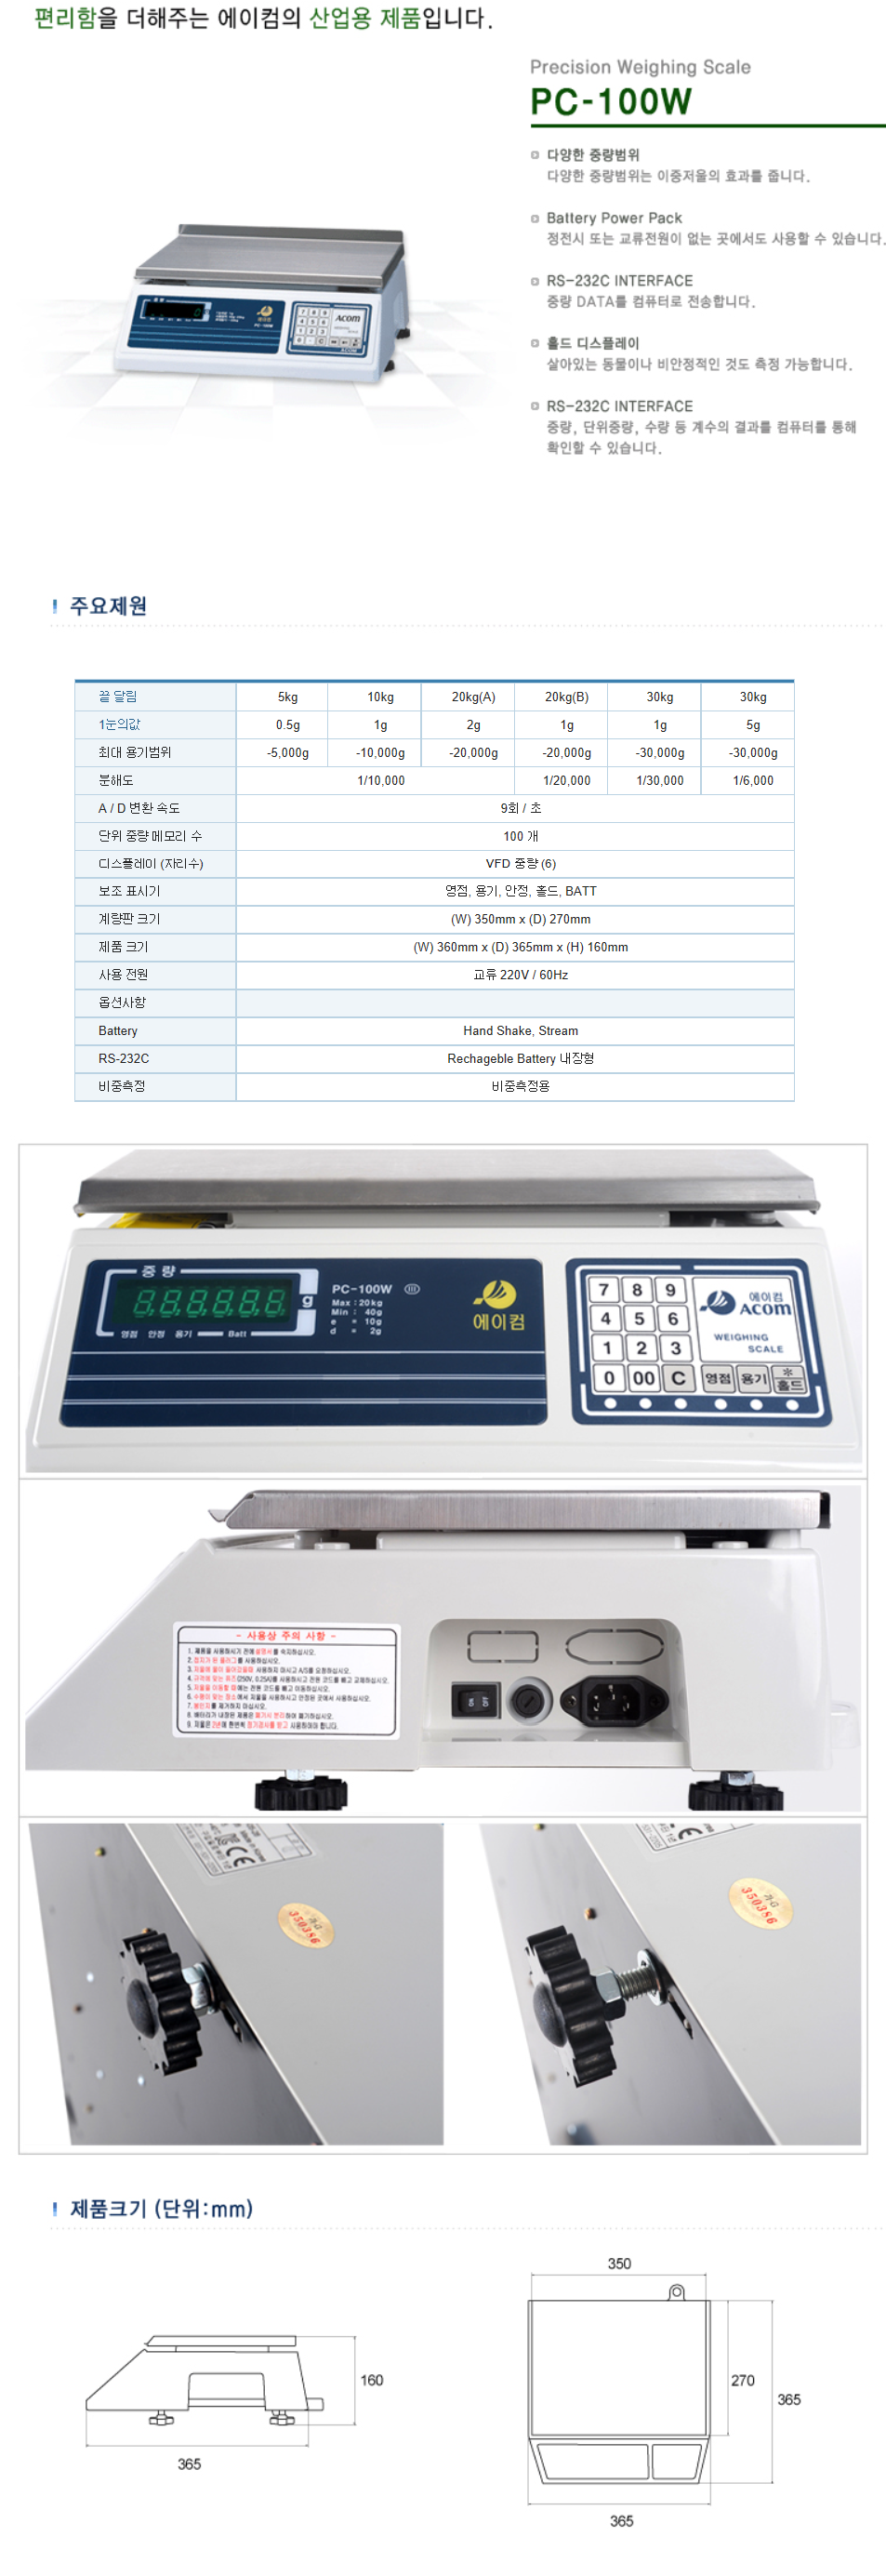 ACOM Precision Weighing Scale PC-100W